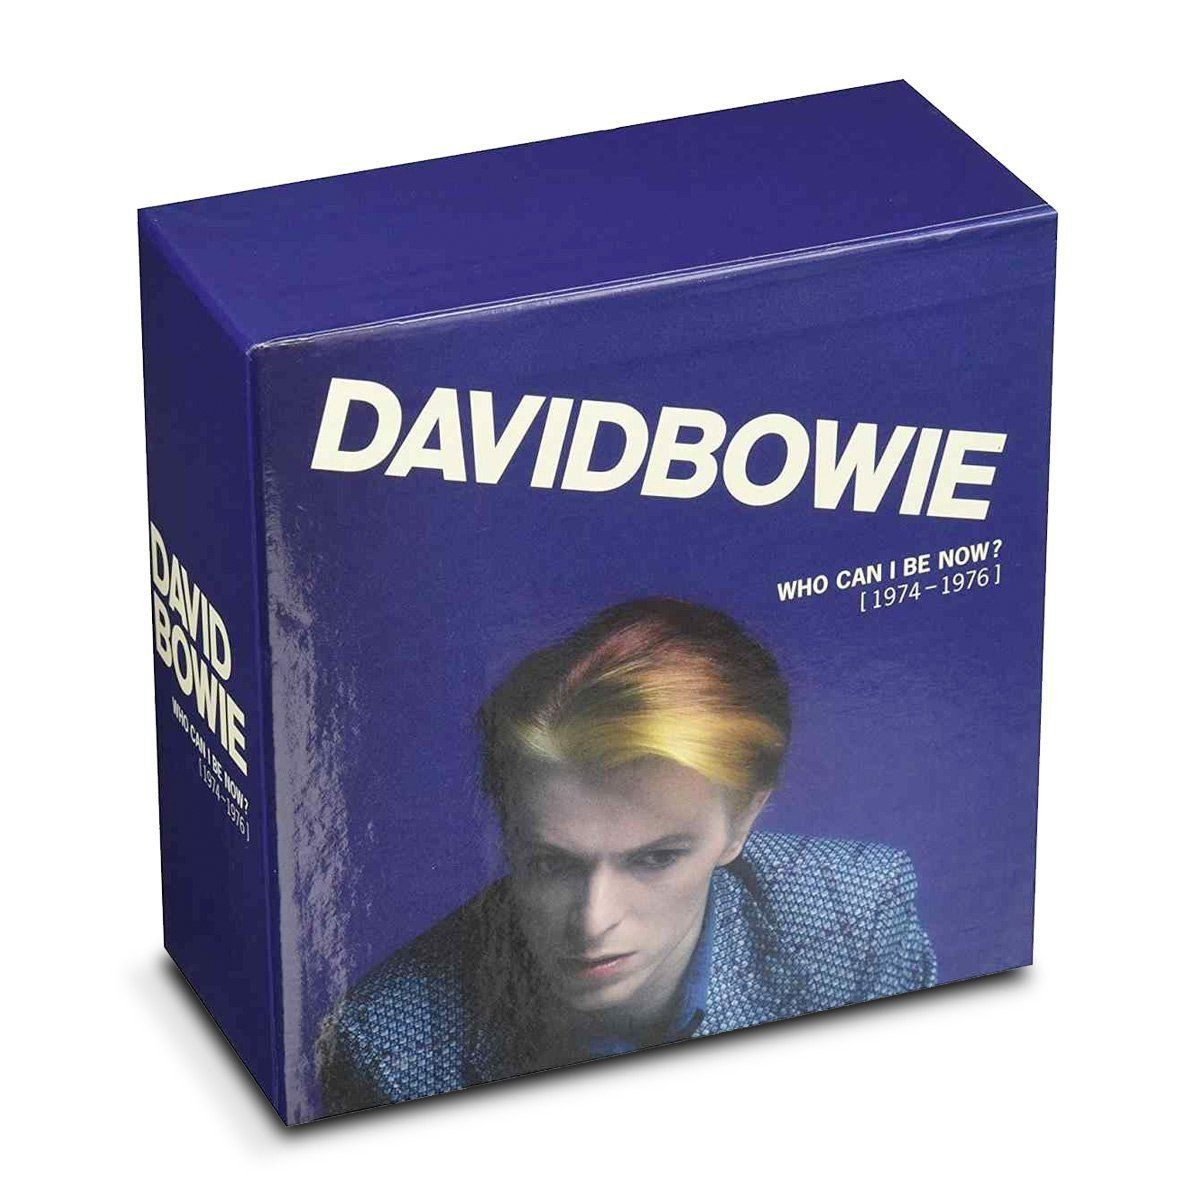 LP David Bowie Who Can i Be Now? (1974 - 1976) Oficial  - bandUP Store Marketplace